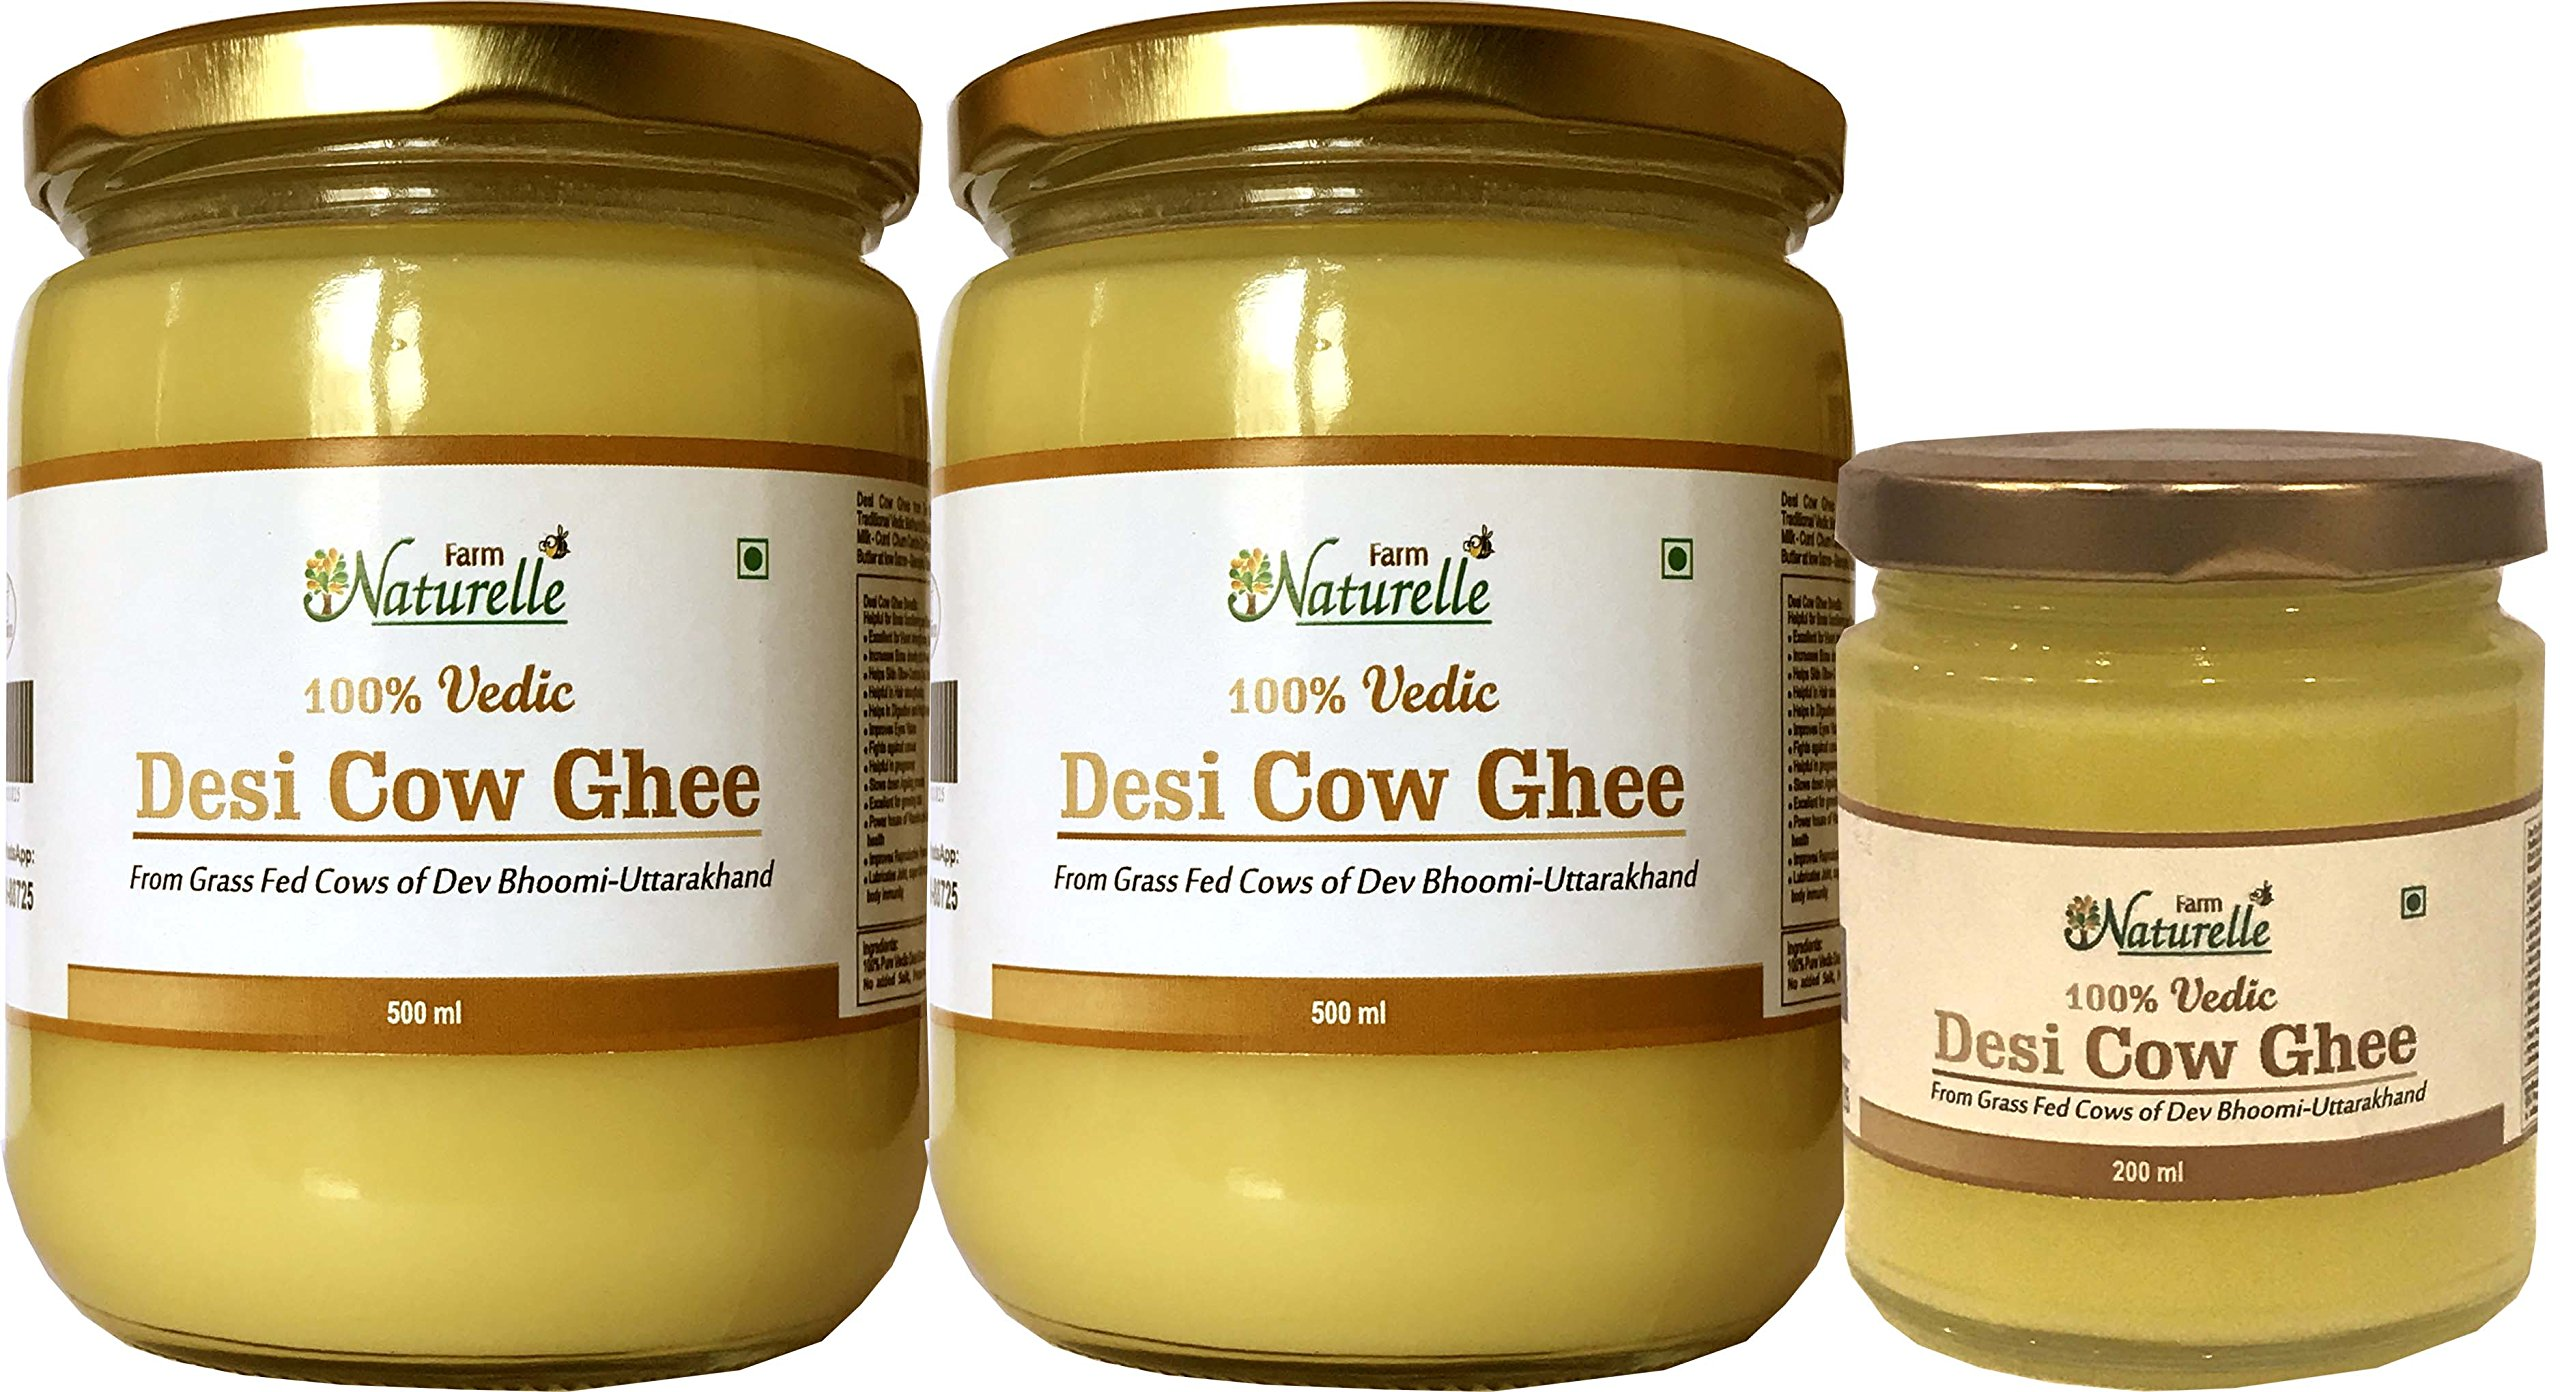 Farm Naturelle-(2 Glass Bottles X 500 Ml + 1 Glass Bottle X 200 Ml) 100% Pure Desi Cow Ghee From A2 Milk (1200 Ml) by Farm Naturelle (Farm Natural Produce) (Image #1)